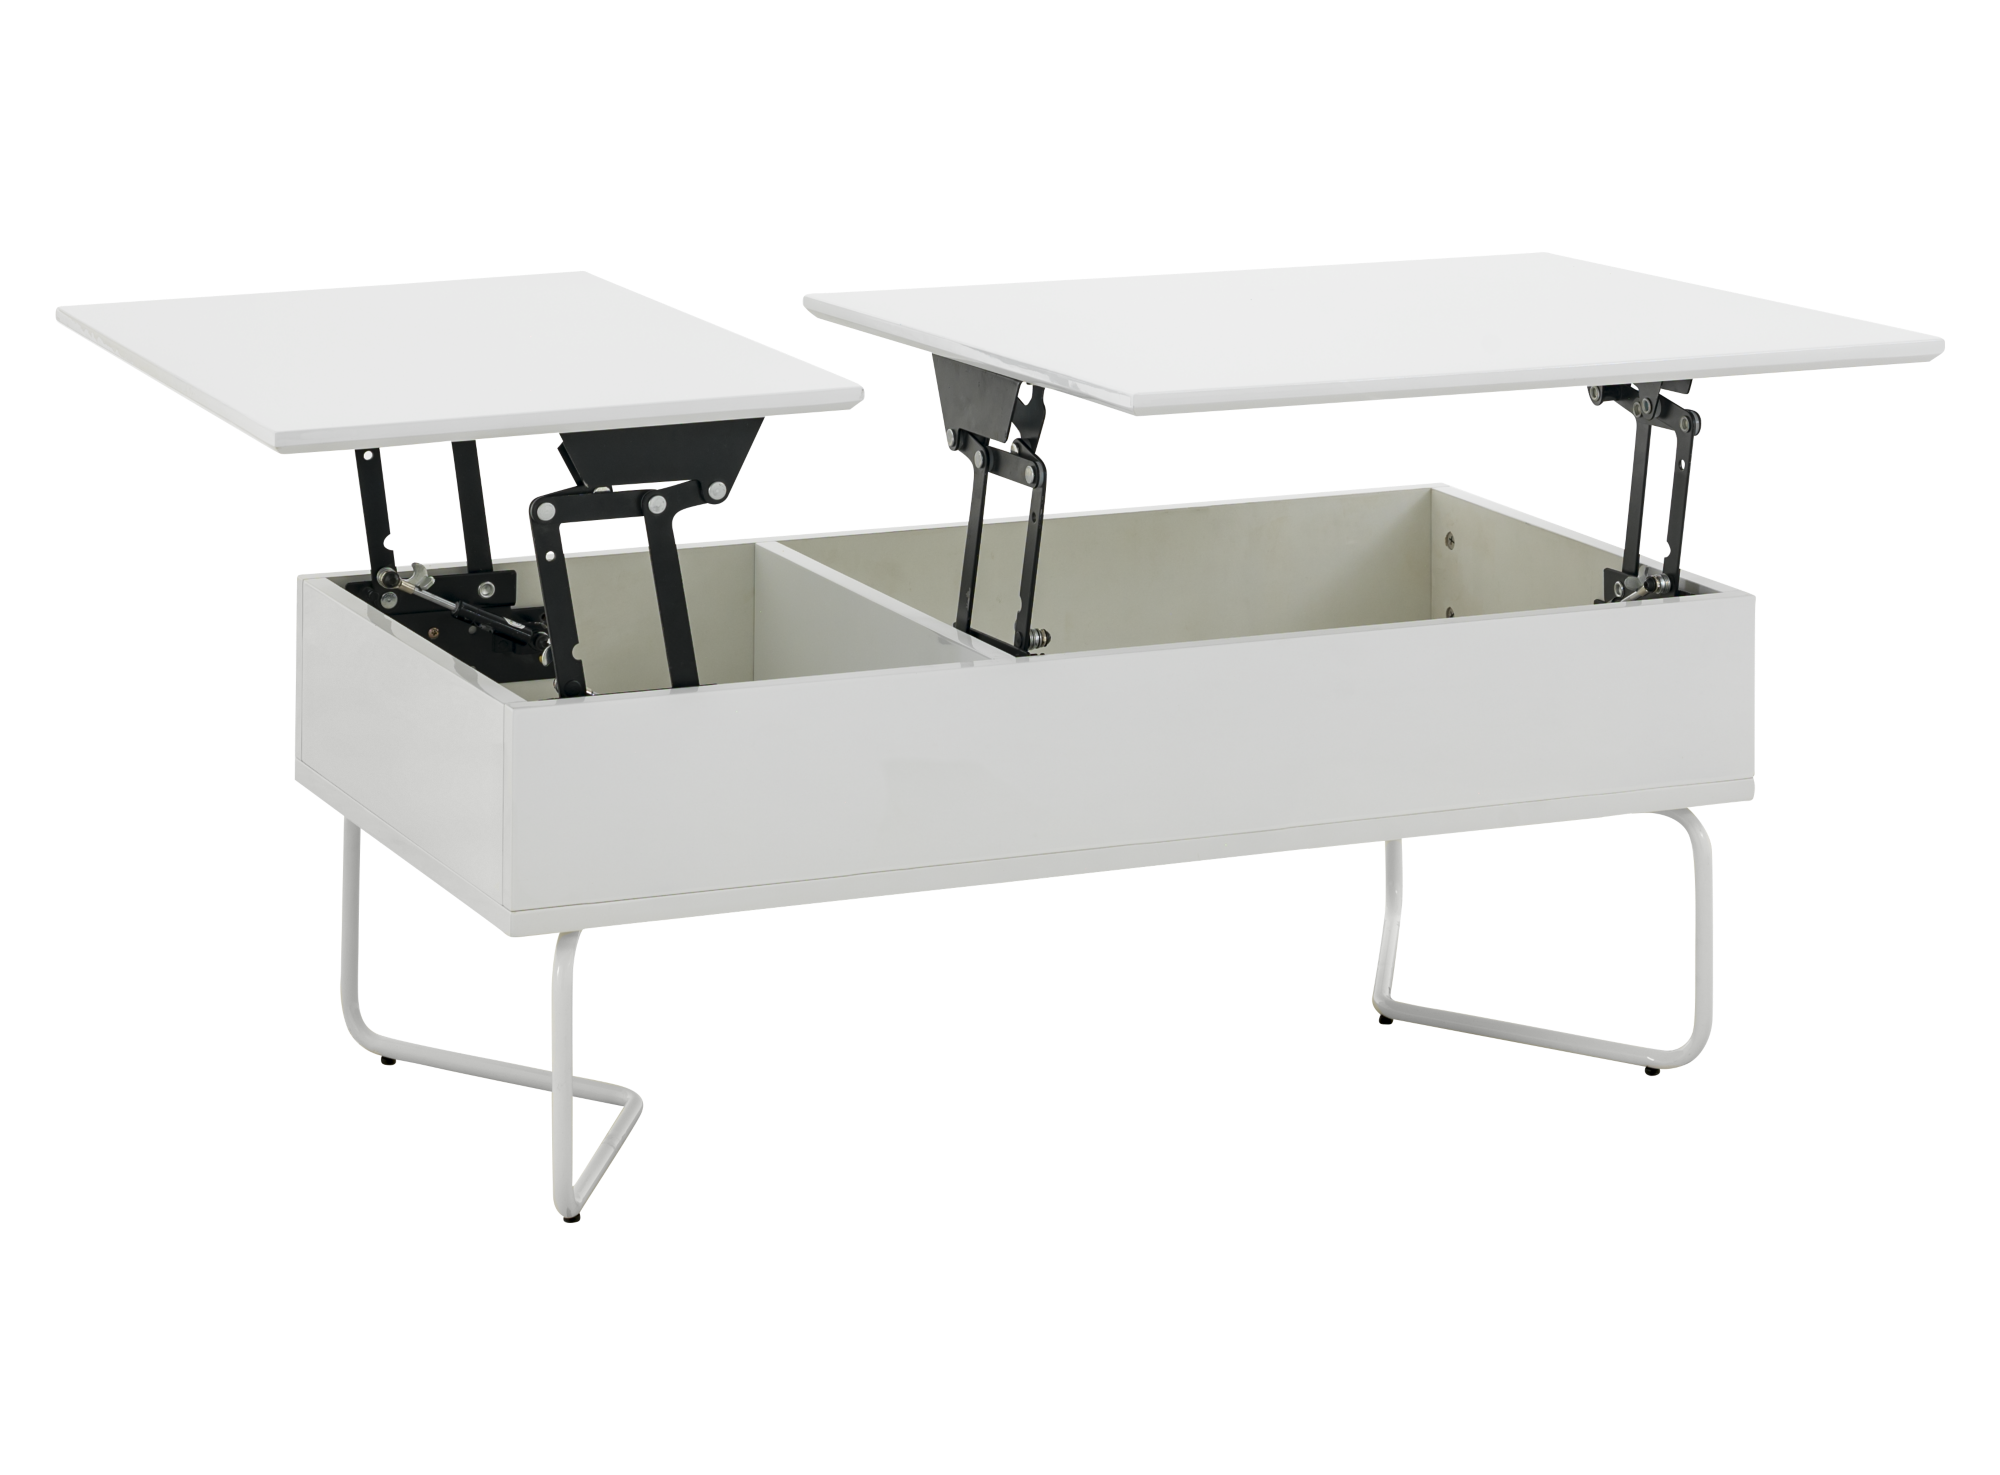 Table Basse Dinette Laque Blanc Table Basse D Appoint Salon Sejour Meuble Fly Table Basse Table Basse D Appoint Table Basse Relevable